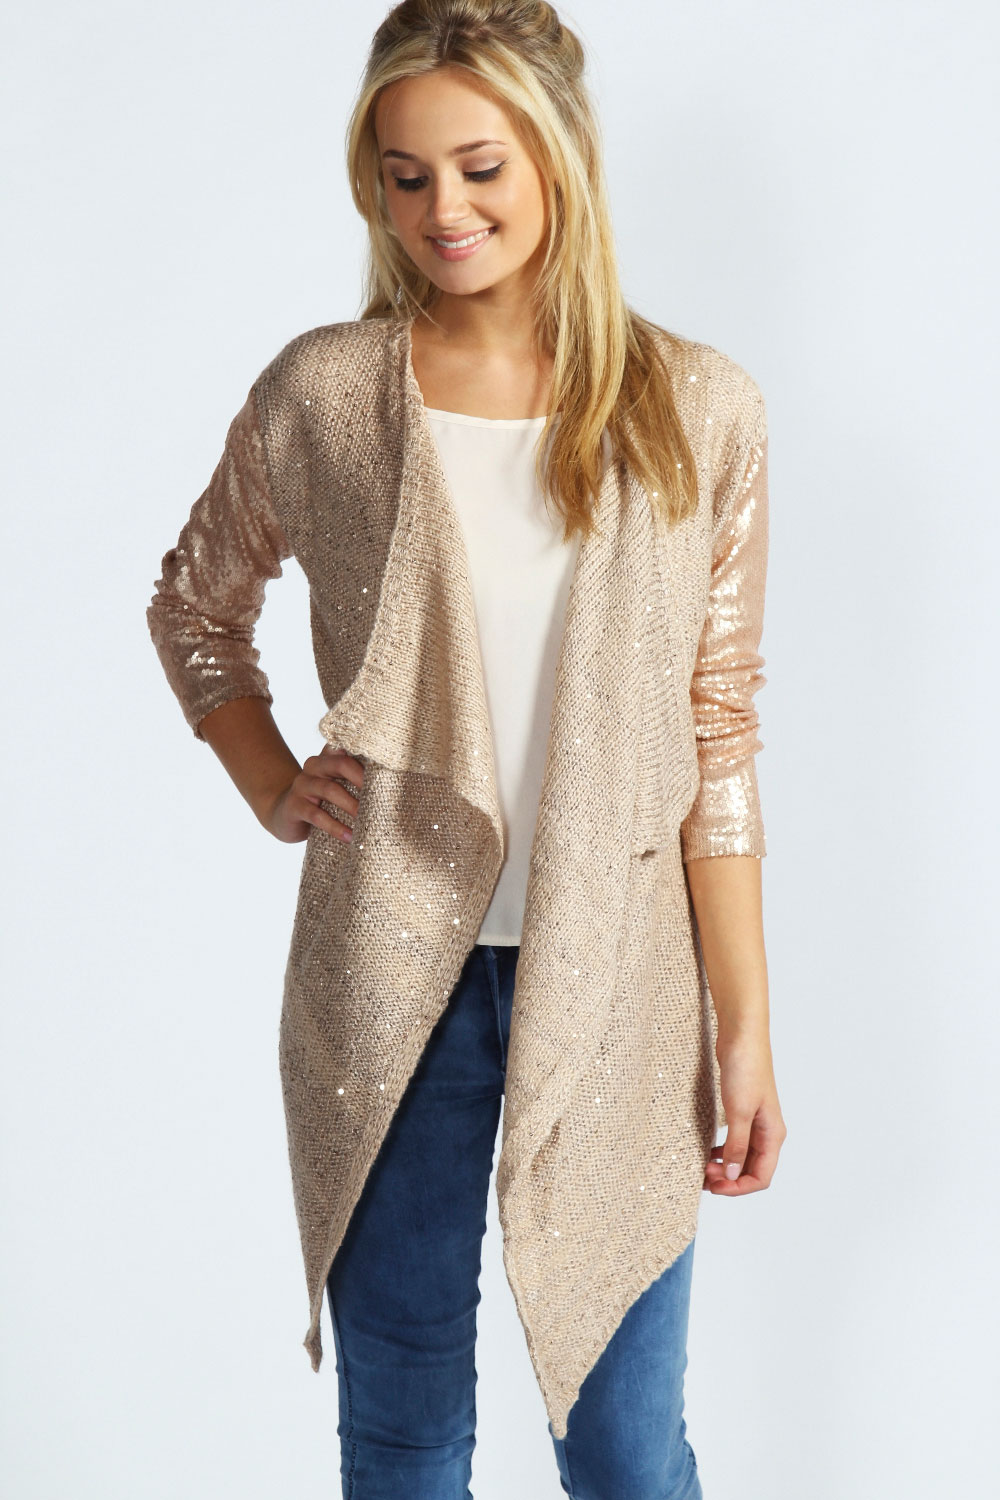 Find womens beige cardigans at ShopStyle. Shop the latest collection of womens beige cardigans from the most popular stores - all in one place.